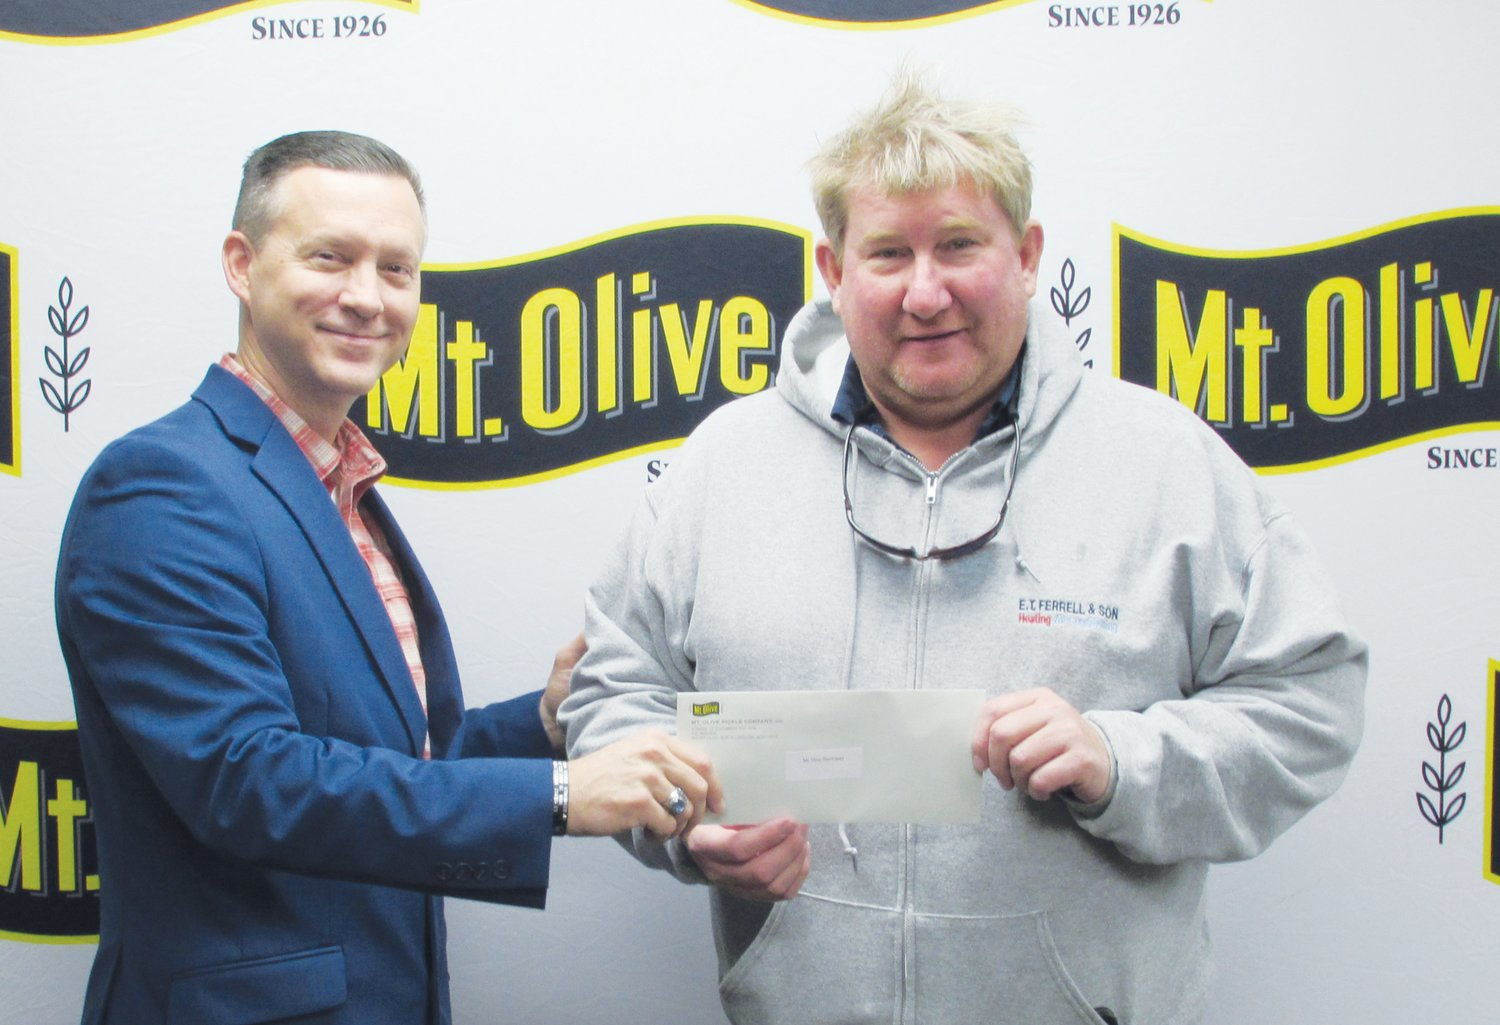 Mt. Olive Pickle Company's Employees Community Fund Chairman Patrick Muston, left, presents a check for $945 to Alex Ferrell, president and head coach of the Mount Olive Hurricanes Youth Football.